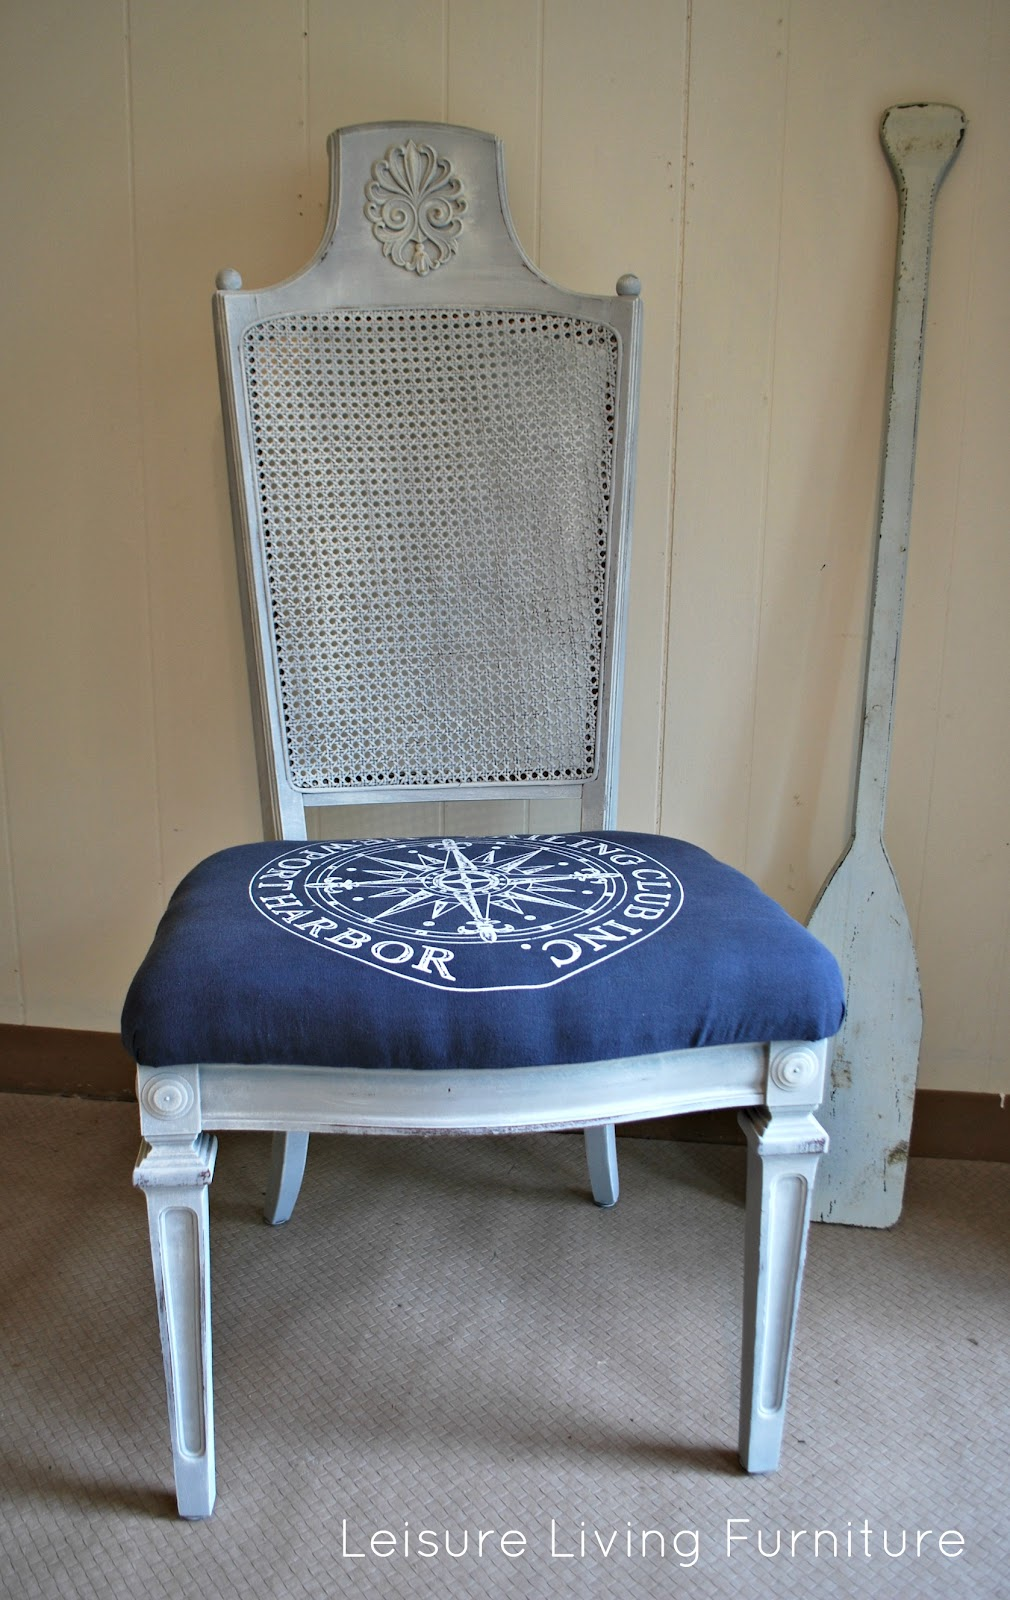 Leisure Living Nautical Accent Chair